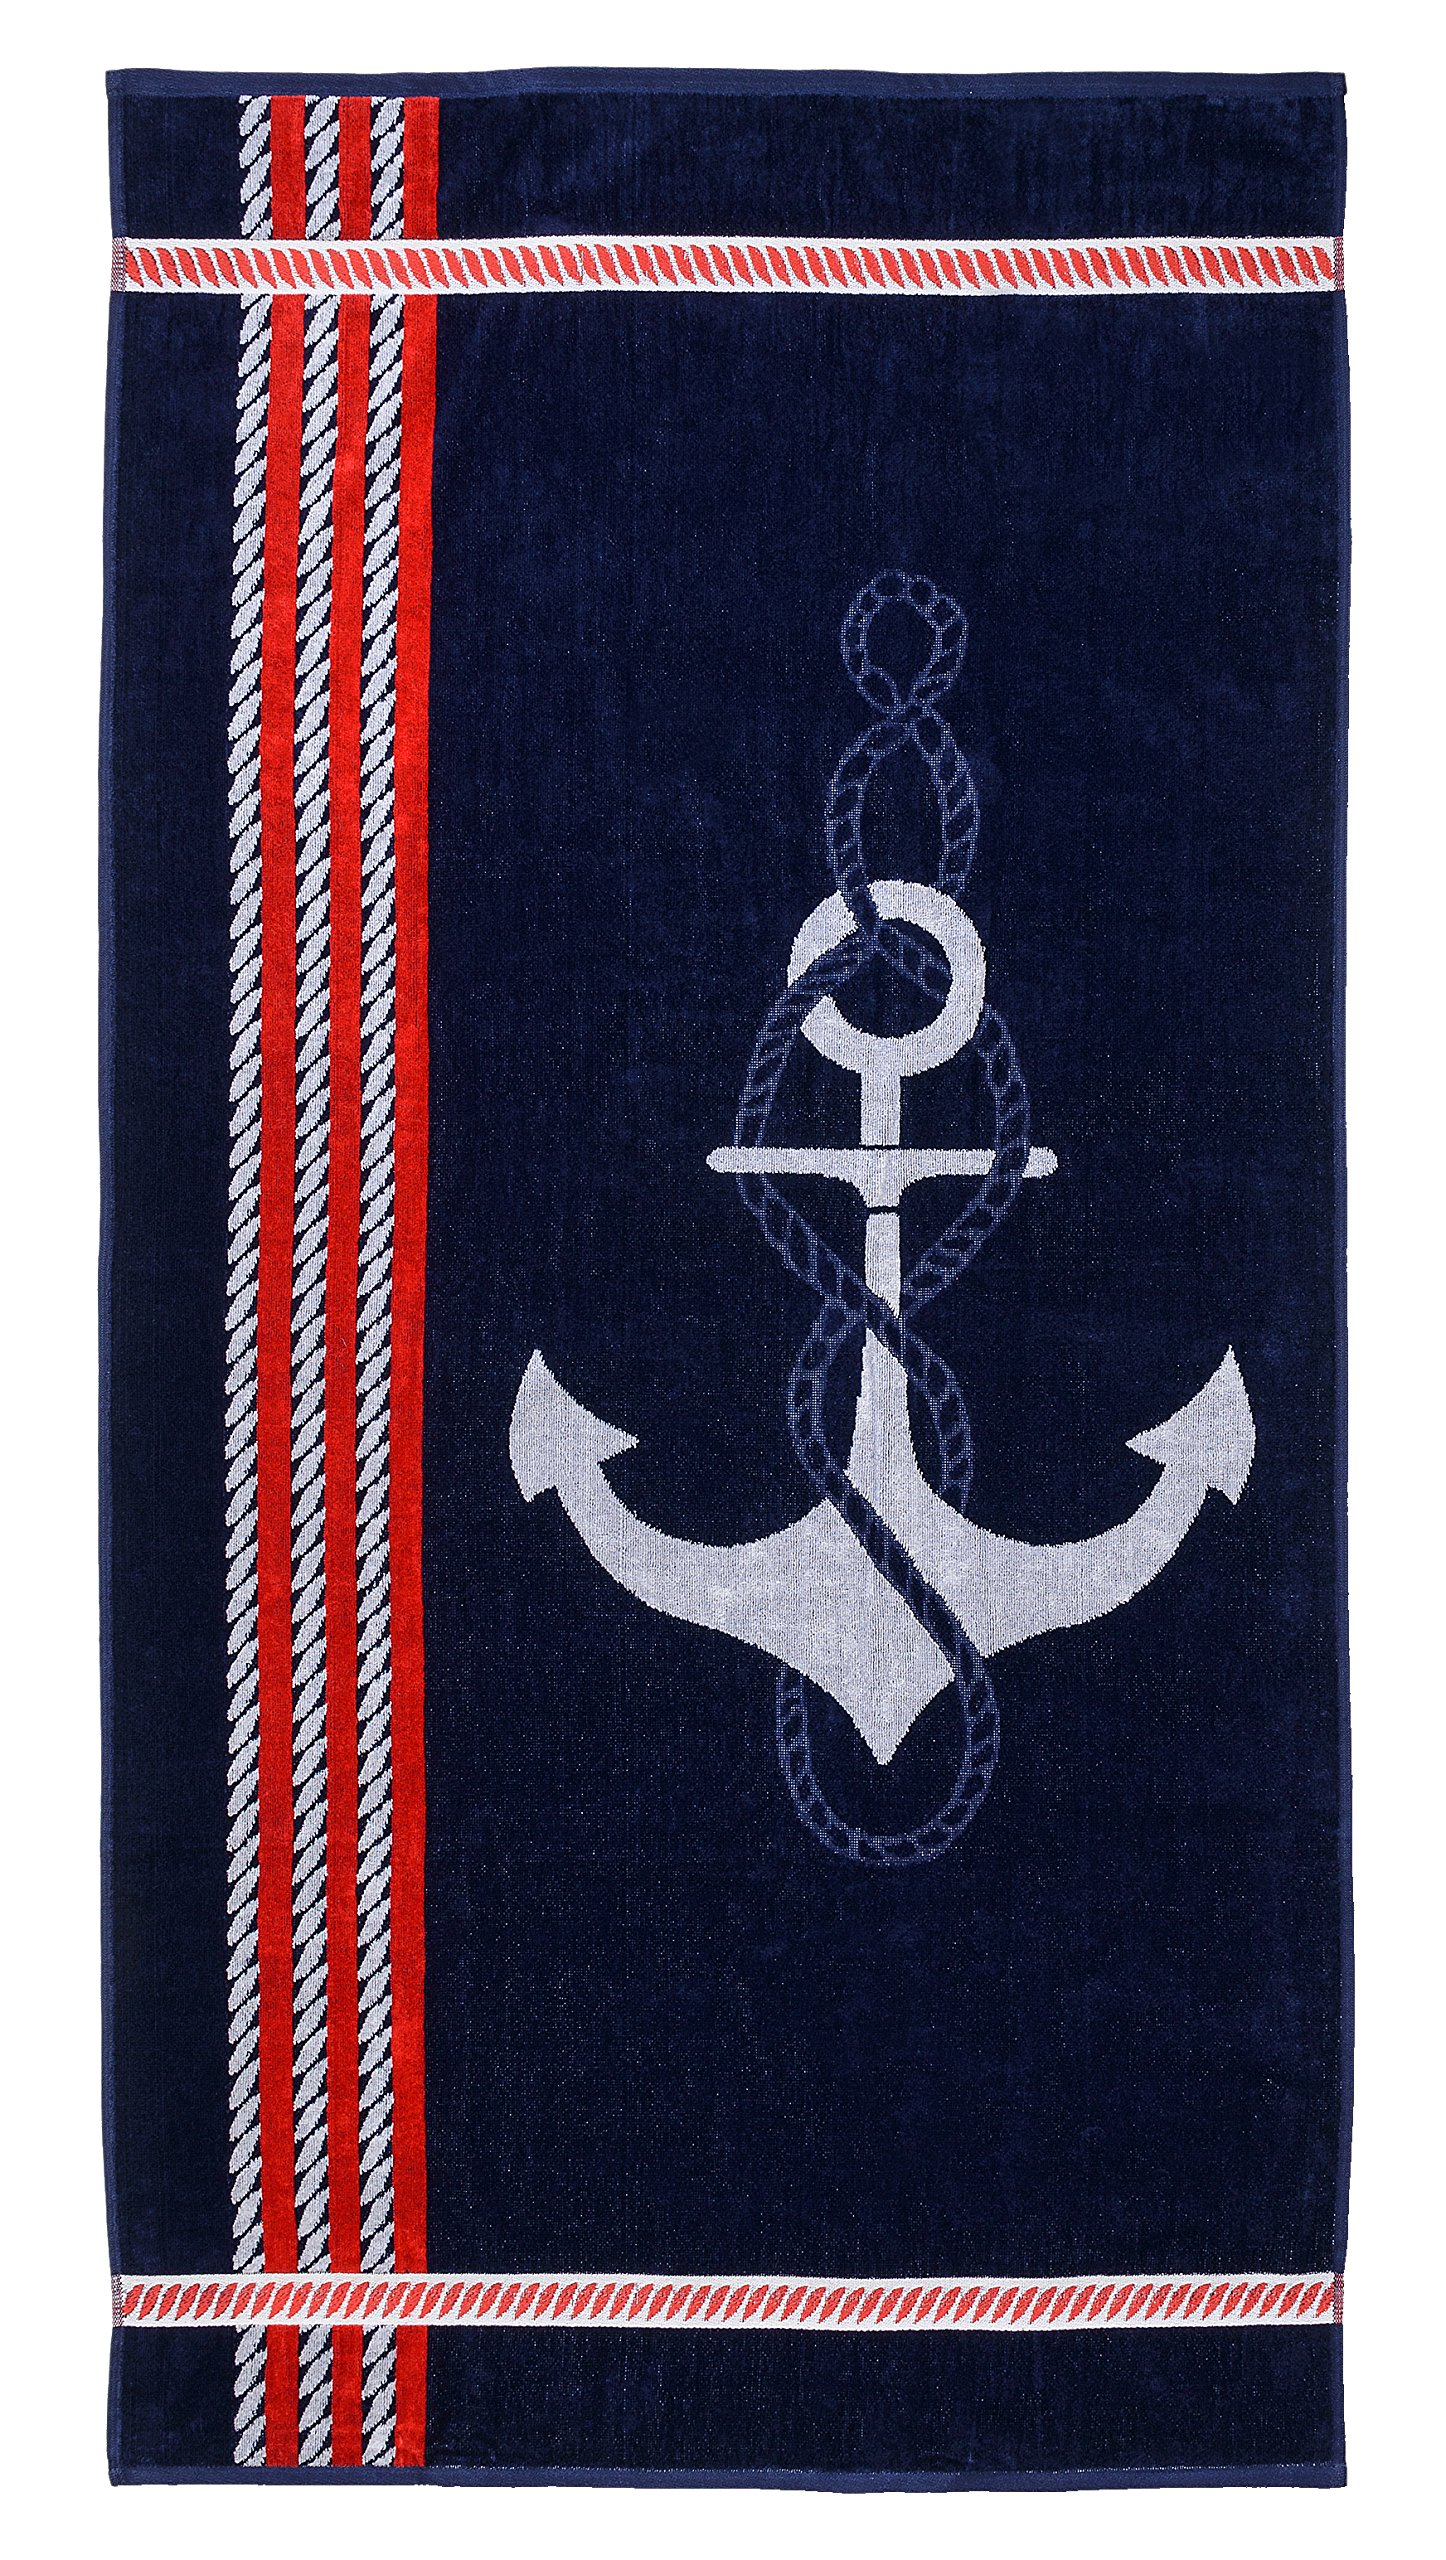 Superior Luxurious 100% Cotton Beach Towels, Oversized 34'' x 64'', Soft Velour Cotton and Absorbent Cotton Terry, Thick and Plush Nautical Beach Towels - Anchor